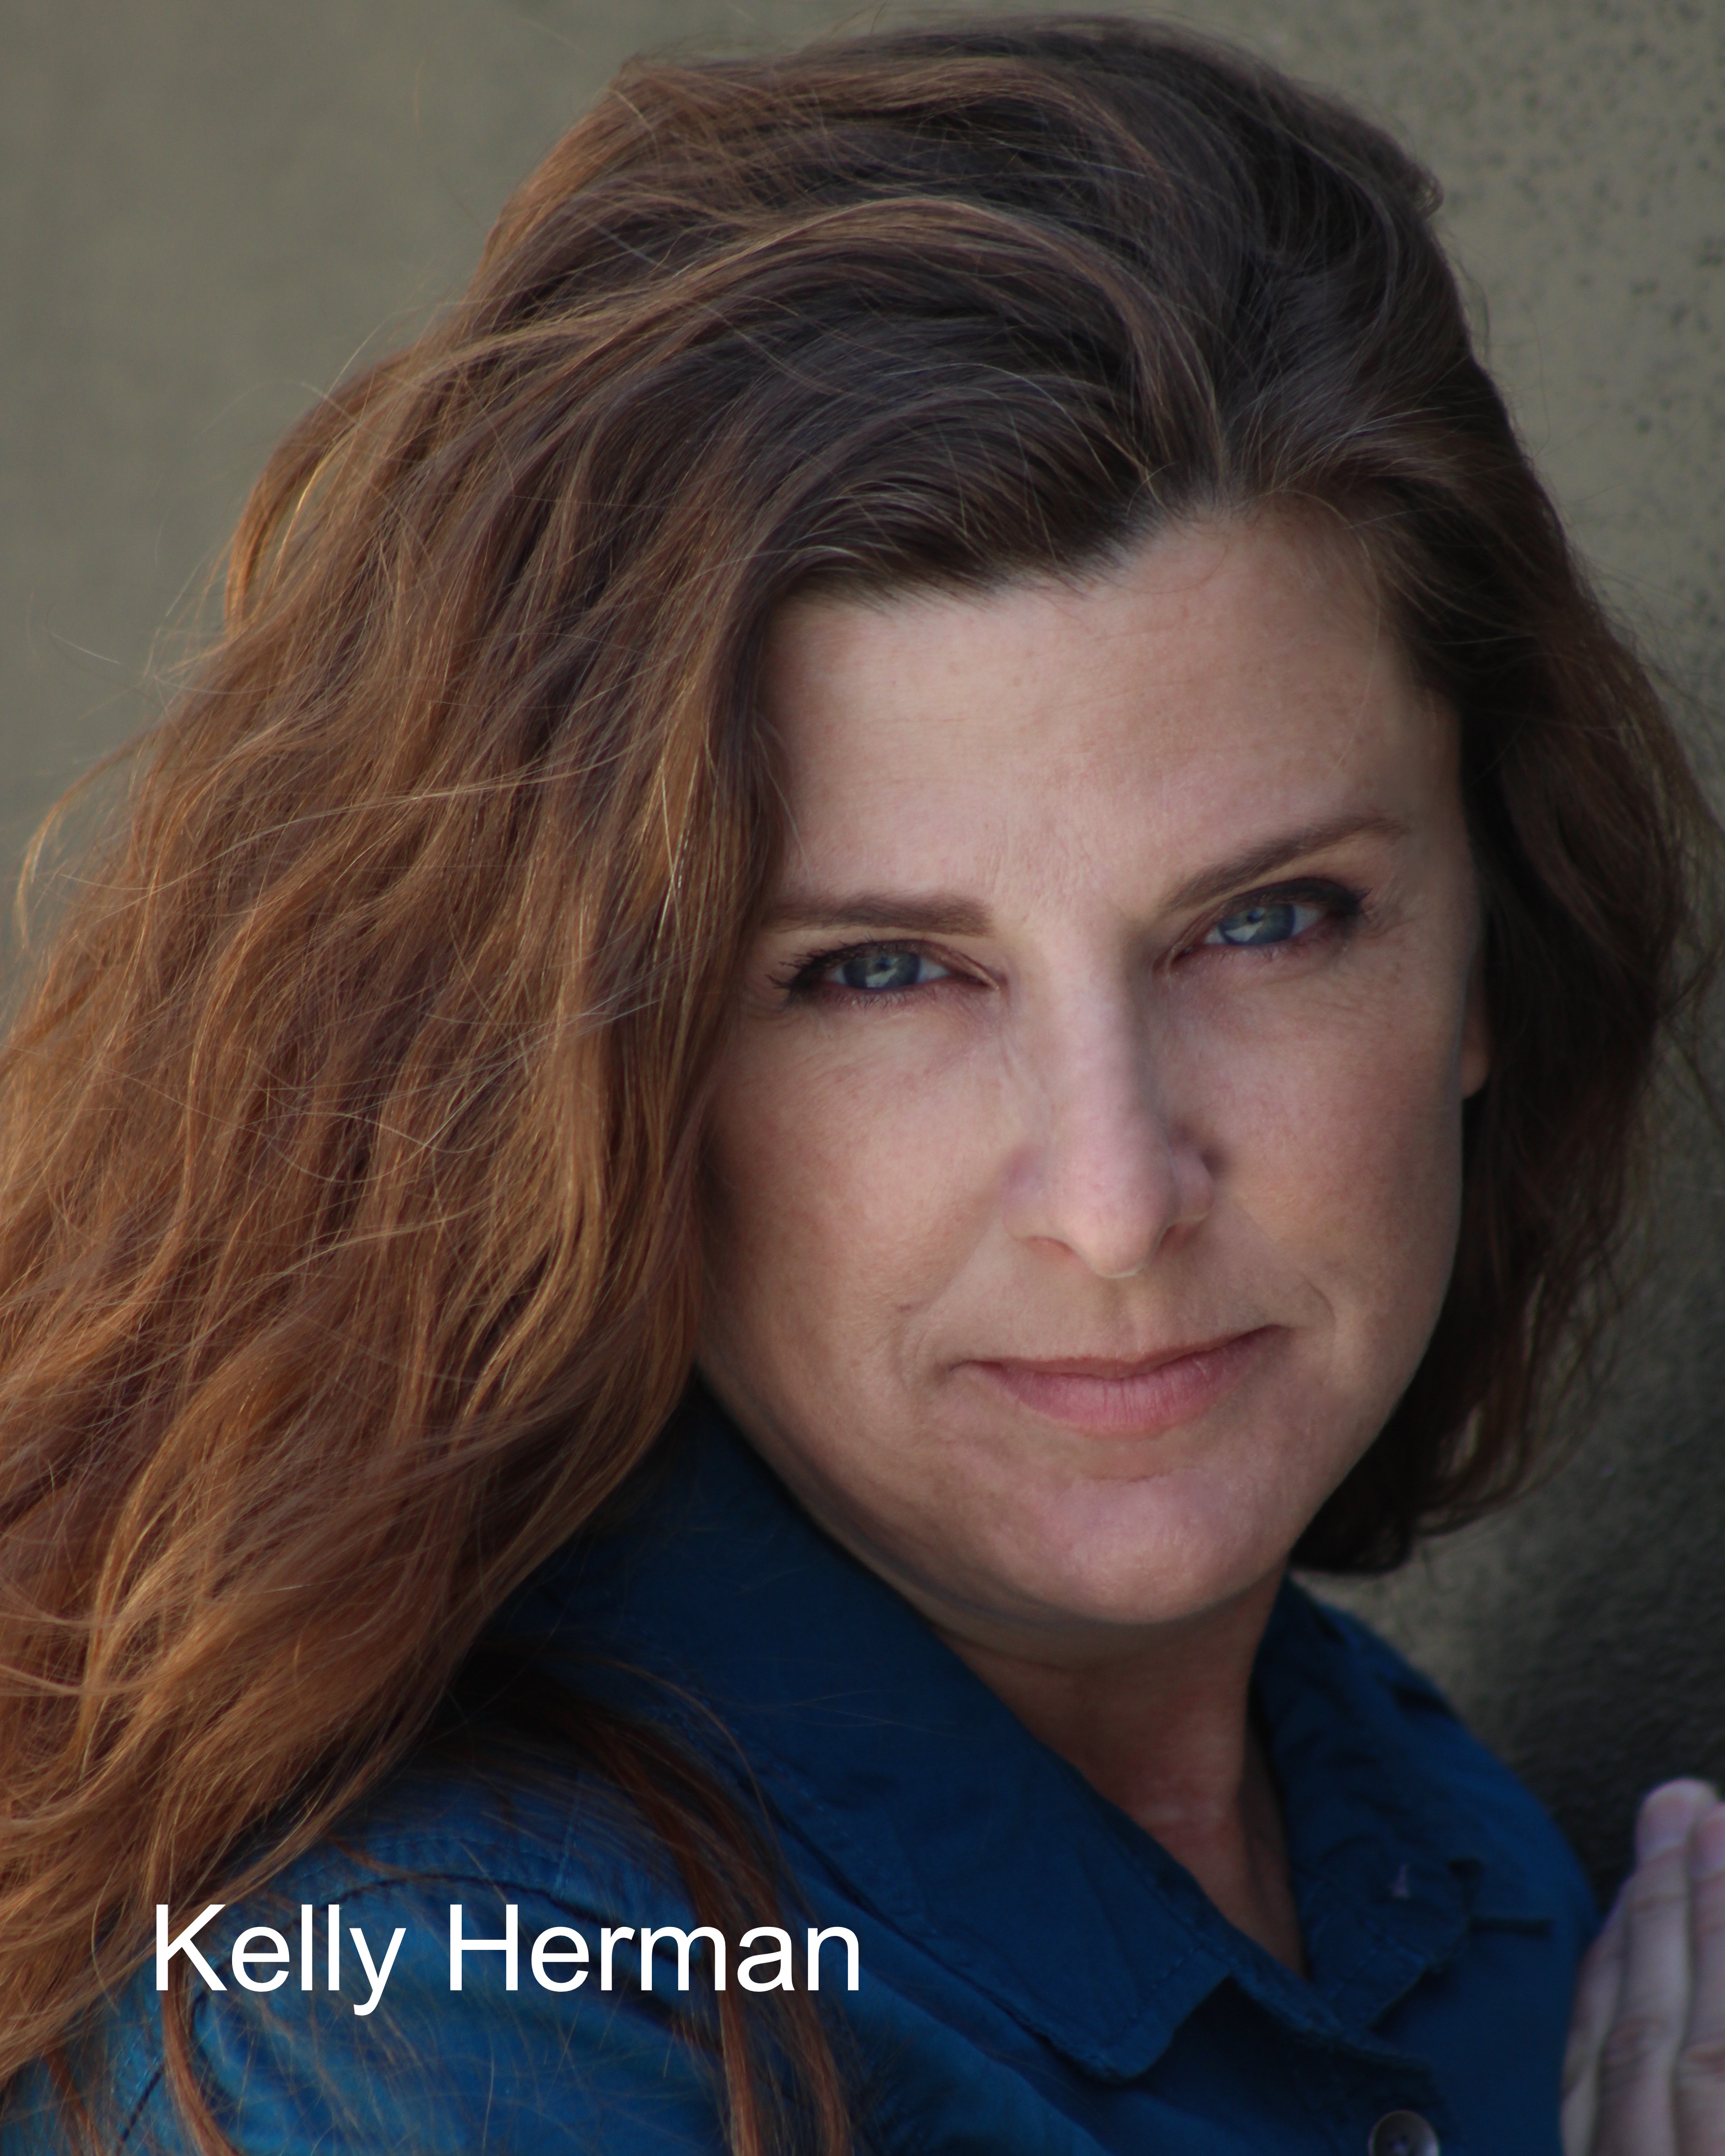 Kelly Herman